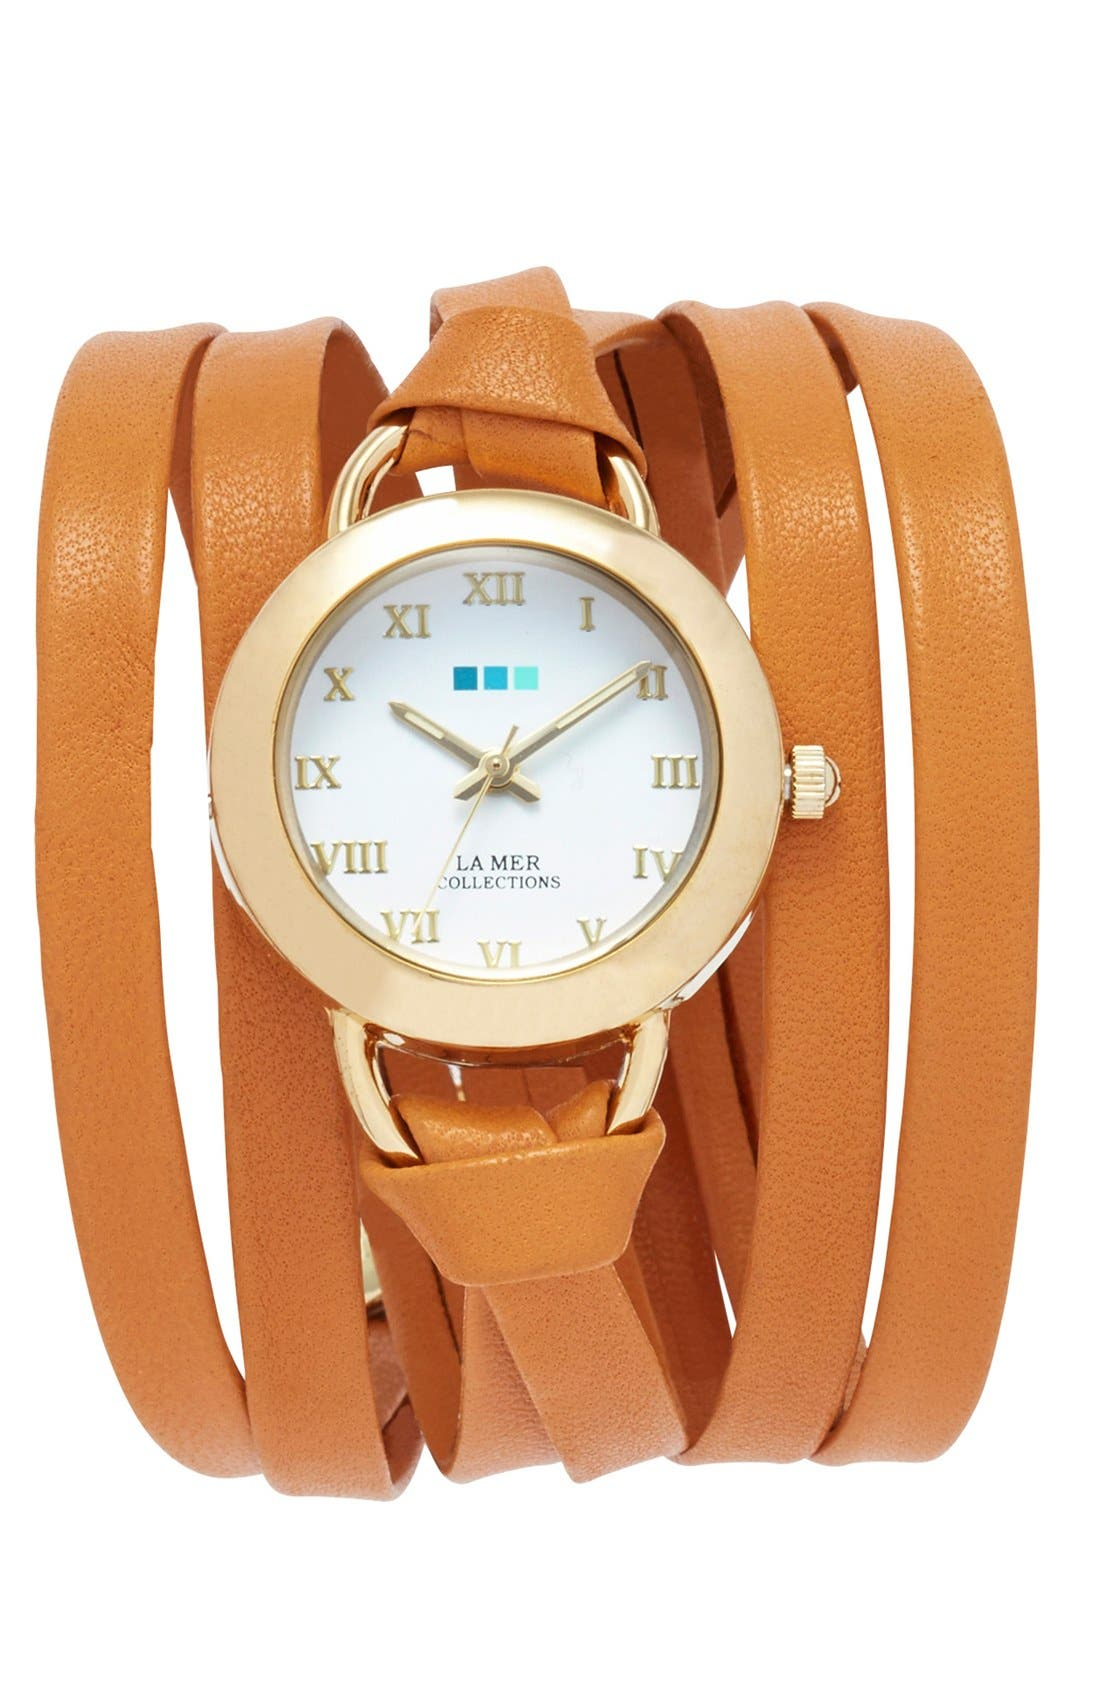 LA MER COLLECTIONS, 'Saturn' Round Leather Wrap Watch, 32mm, Main thumbnail 1, color, 200